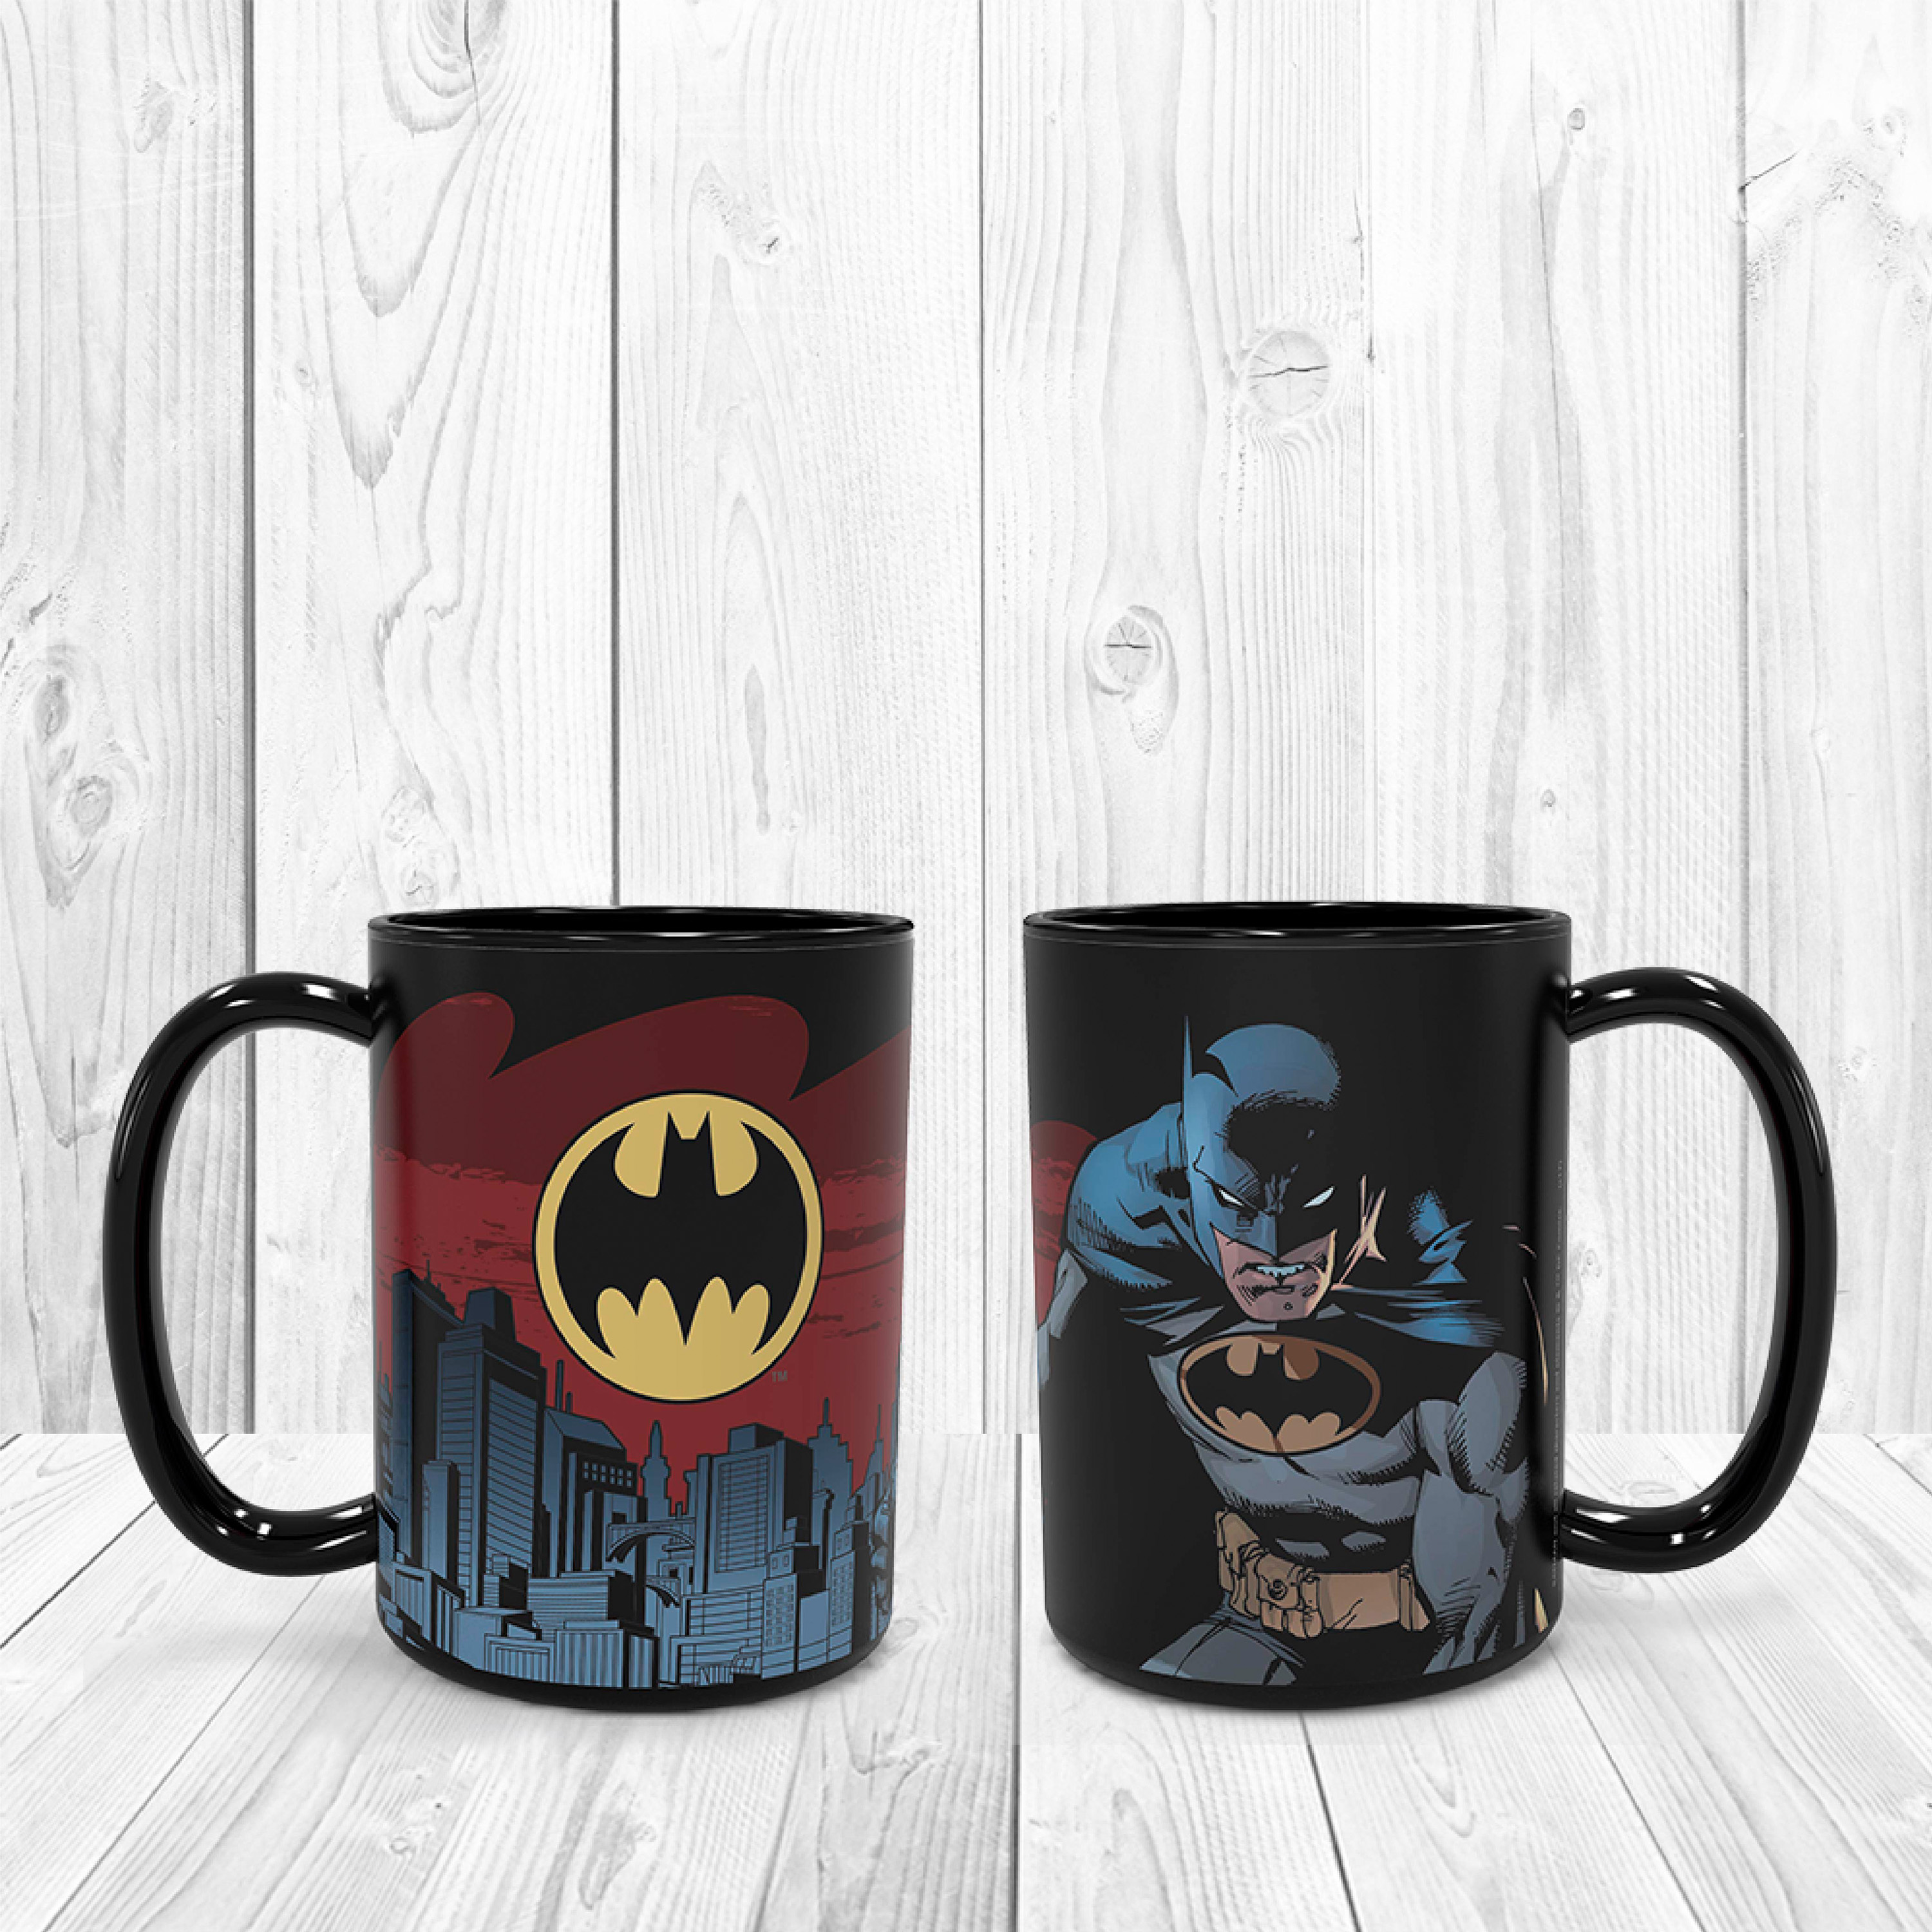 DC Comics 15 oz. Coffee Mug, Batman slideshow image 10